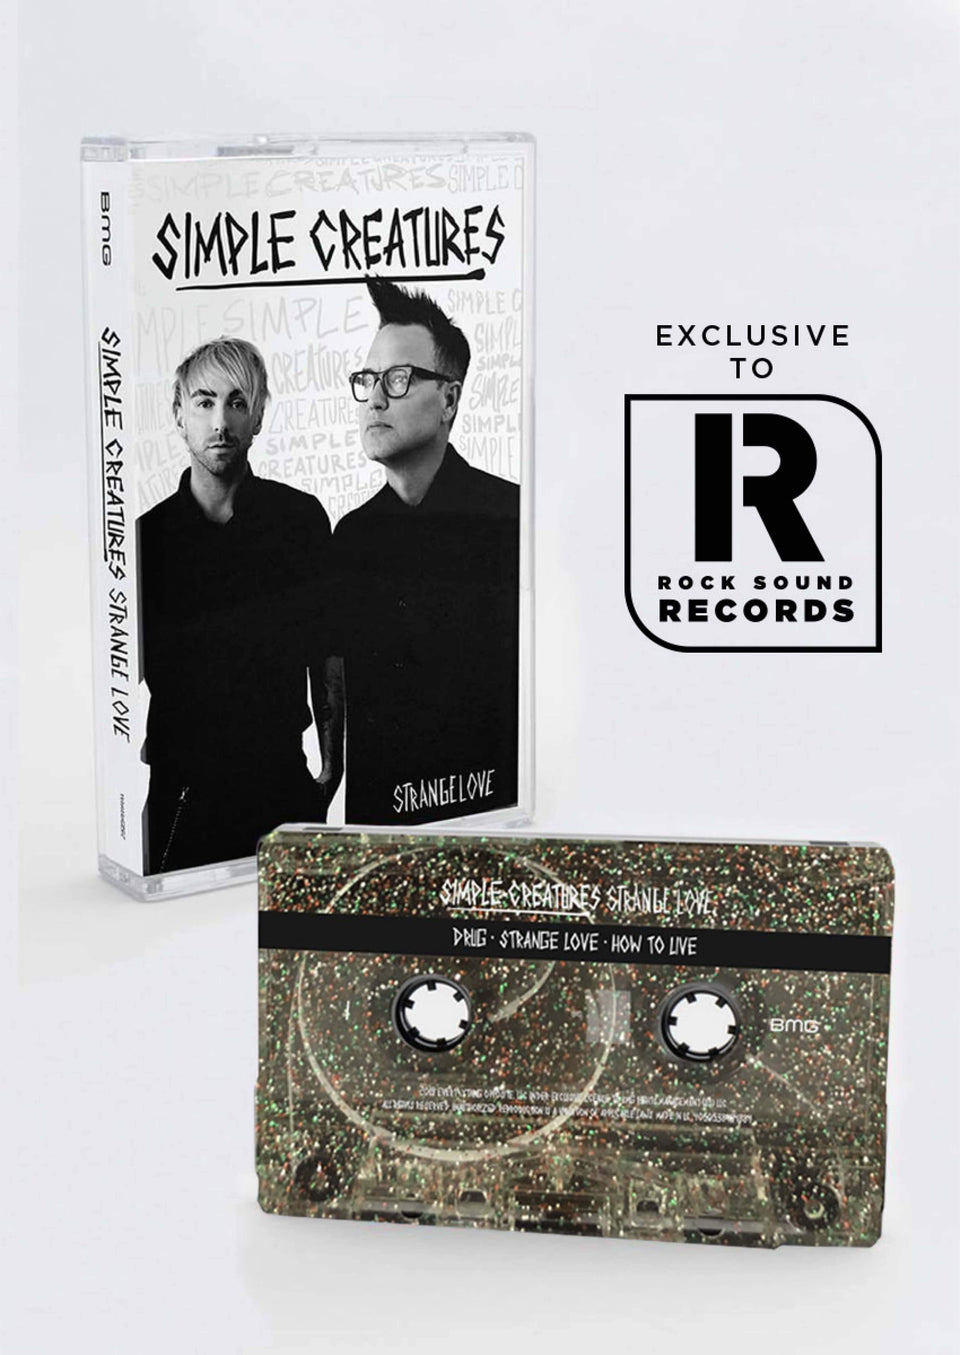 Simple Creatures - 'Strange Love' Cassette EP Variant - Rock Sound Shop